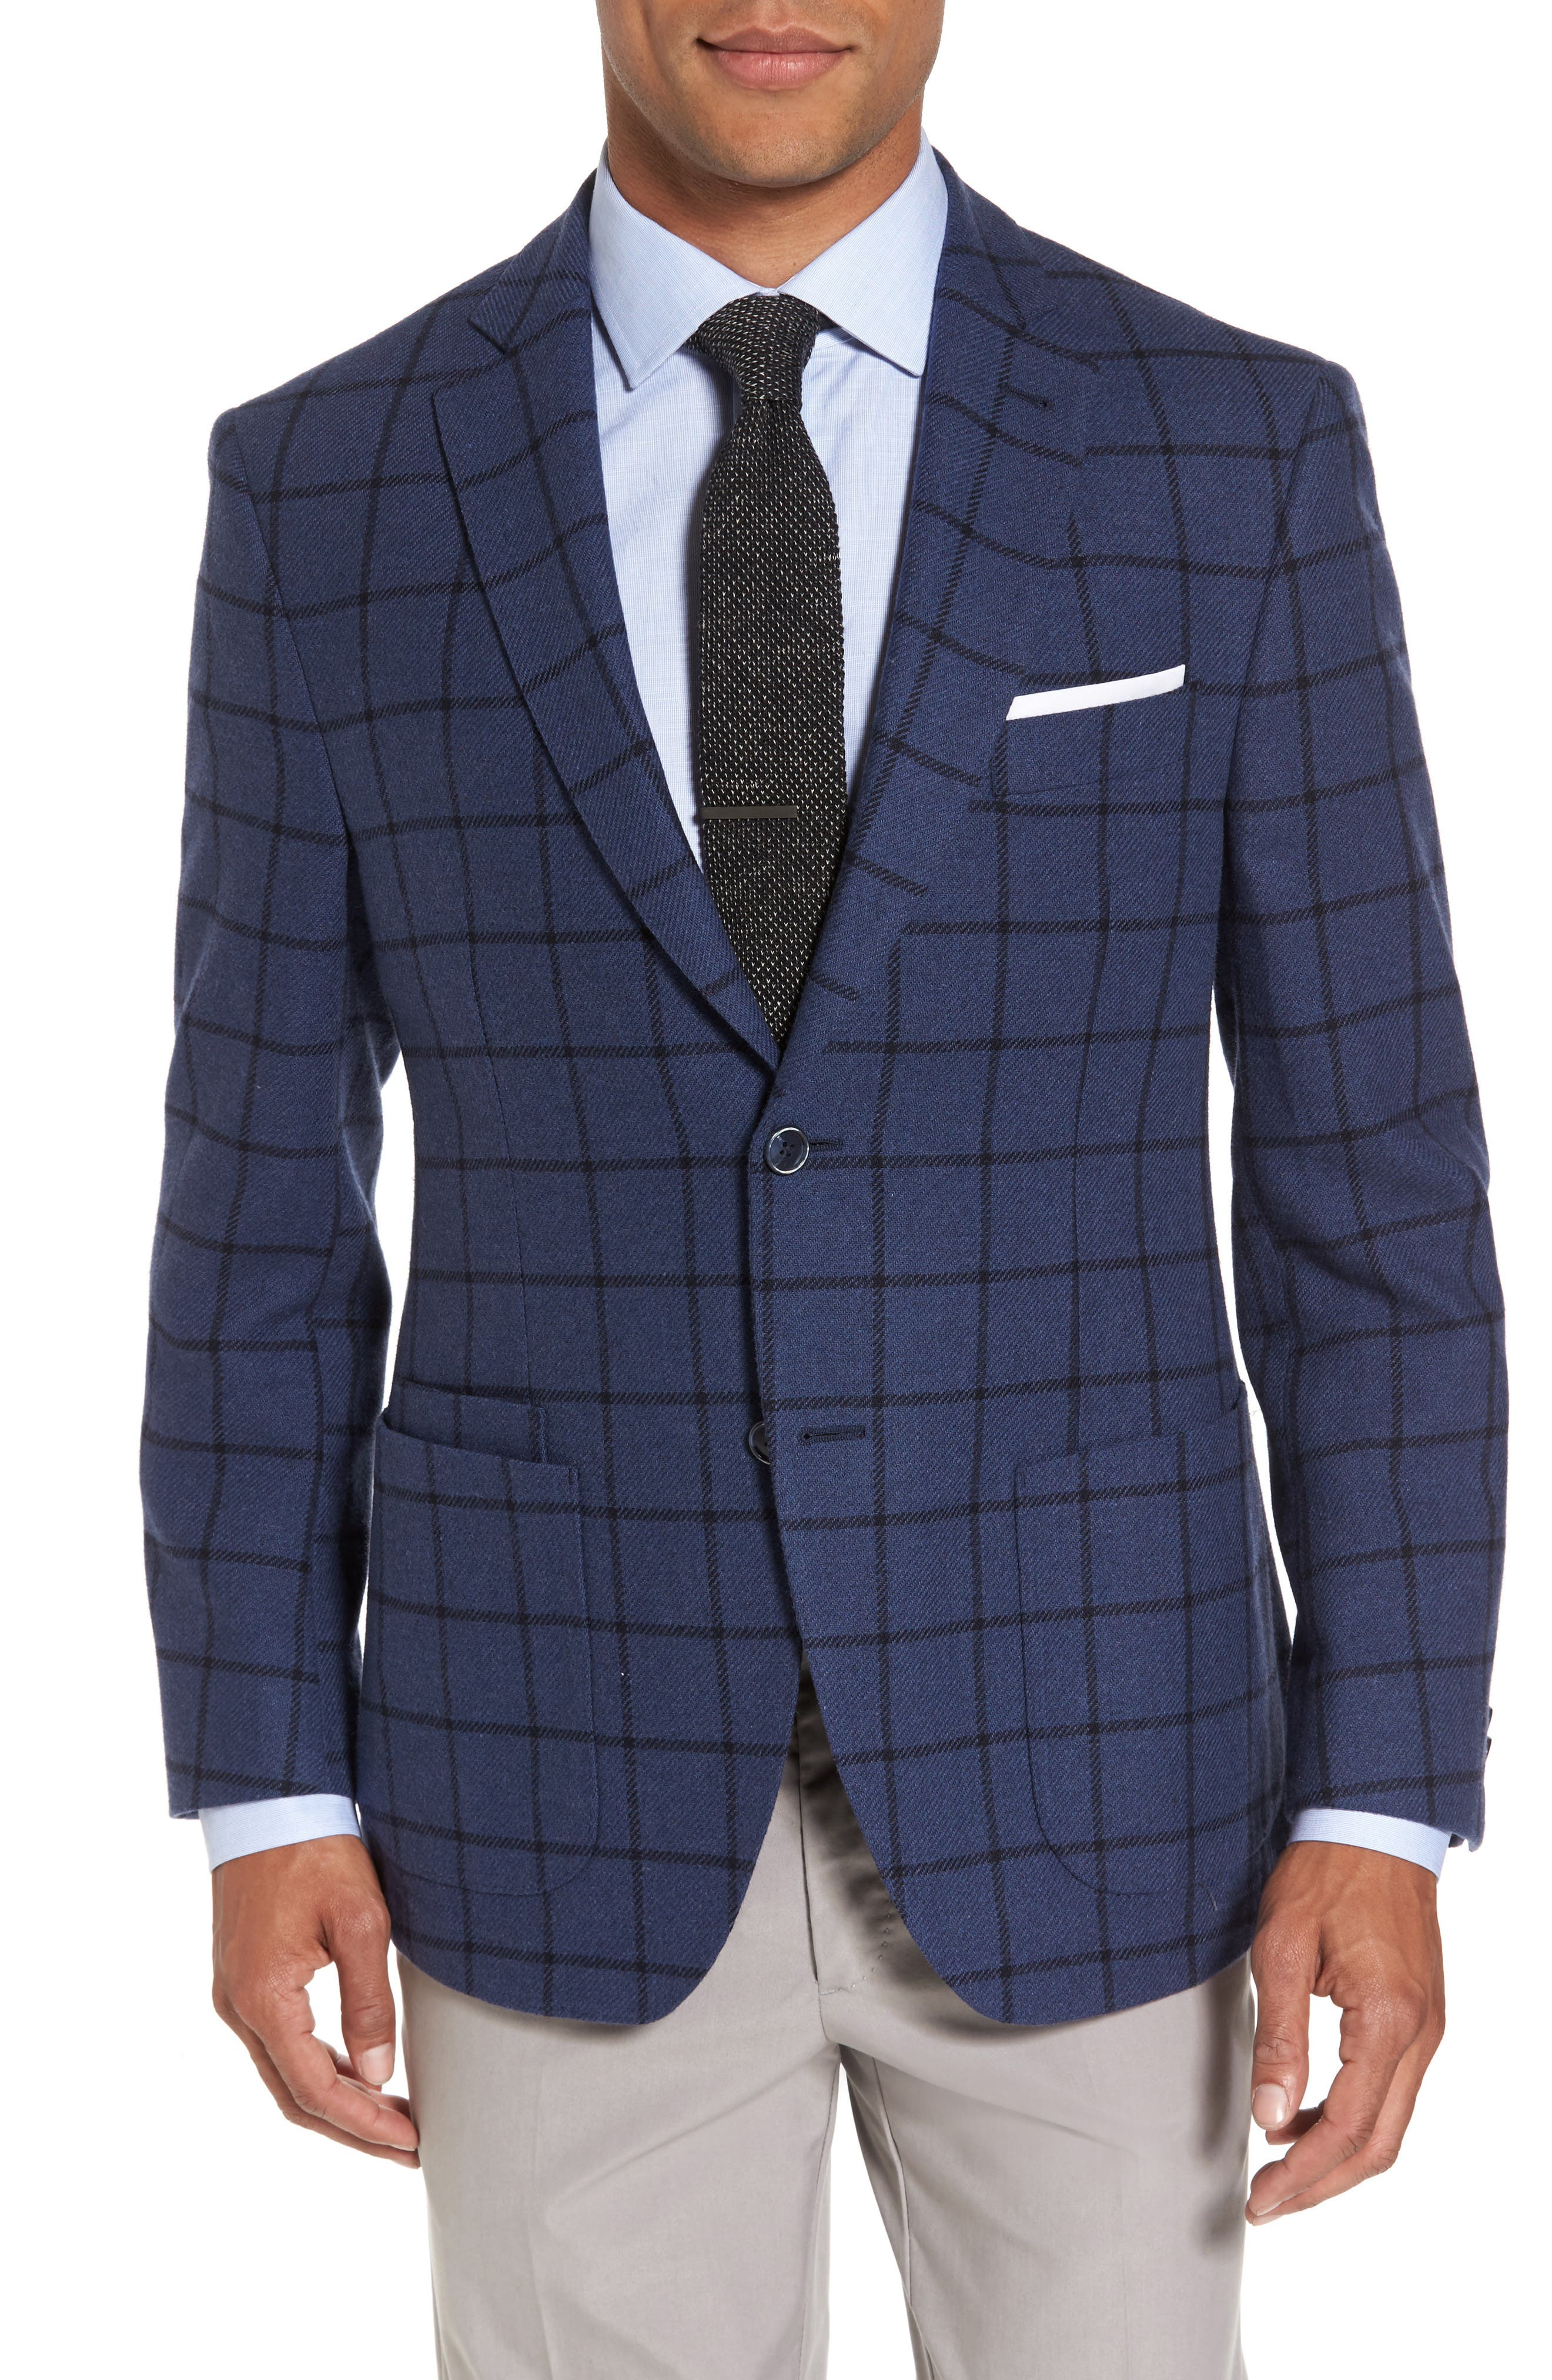 Main Image - JKT New York Trim Fit Windowpane Wool Blend Sport Coat